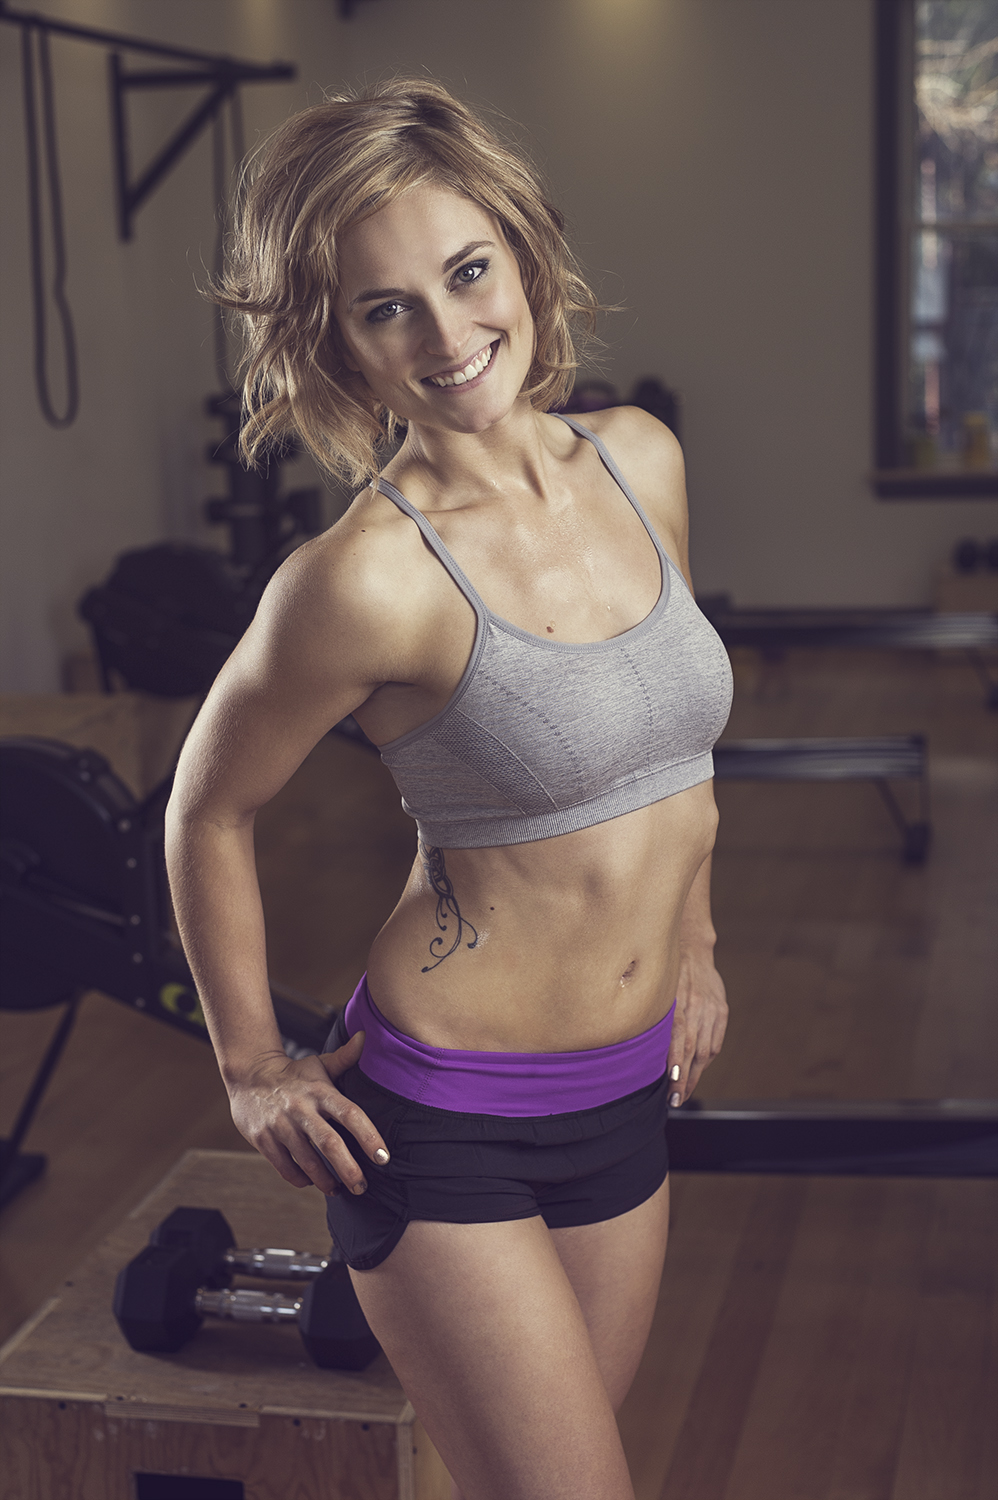 Hamilton and Toronto Fitness Photography By Marek Michalek - Female Fitness Model.jpg